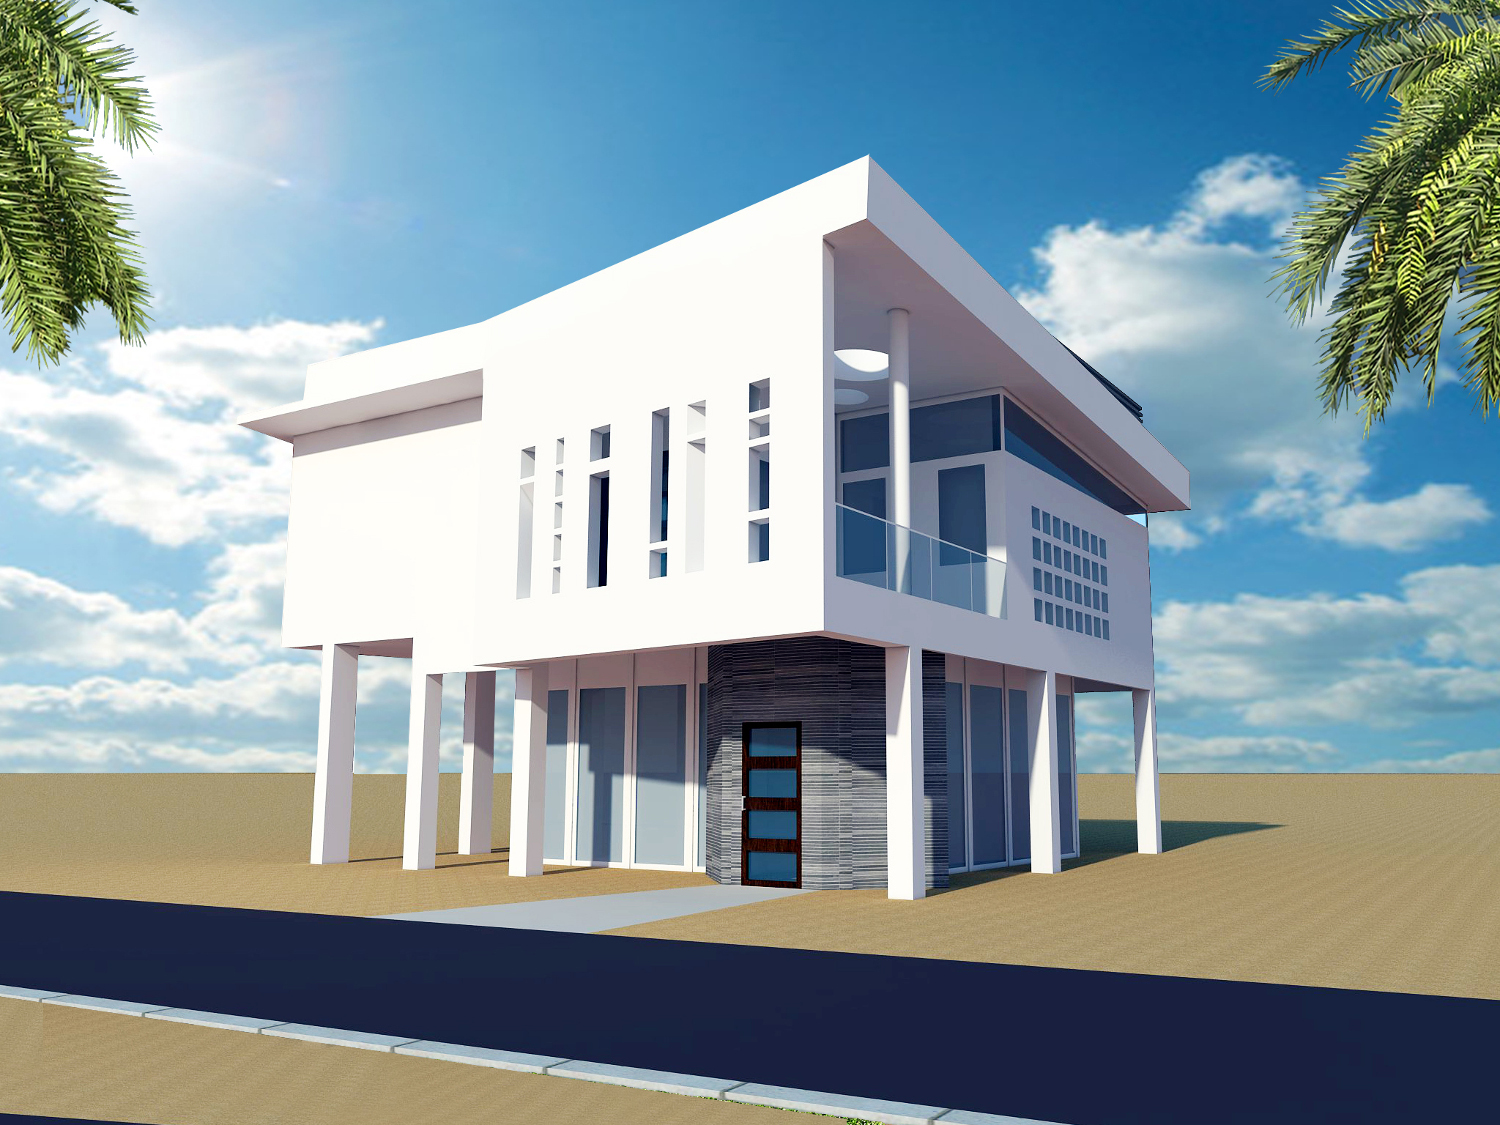 Google sketchup a study of architecture somegamez for Architectural design with sketchup